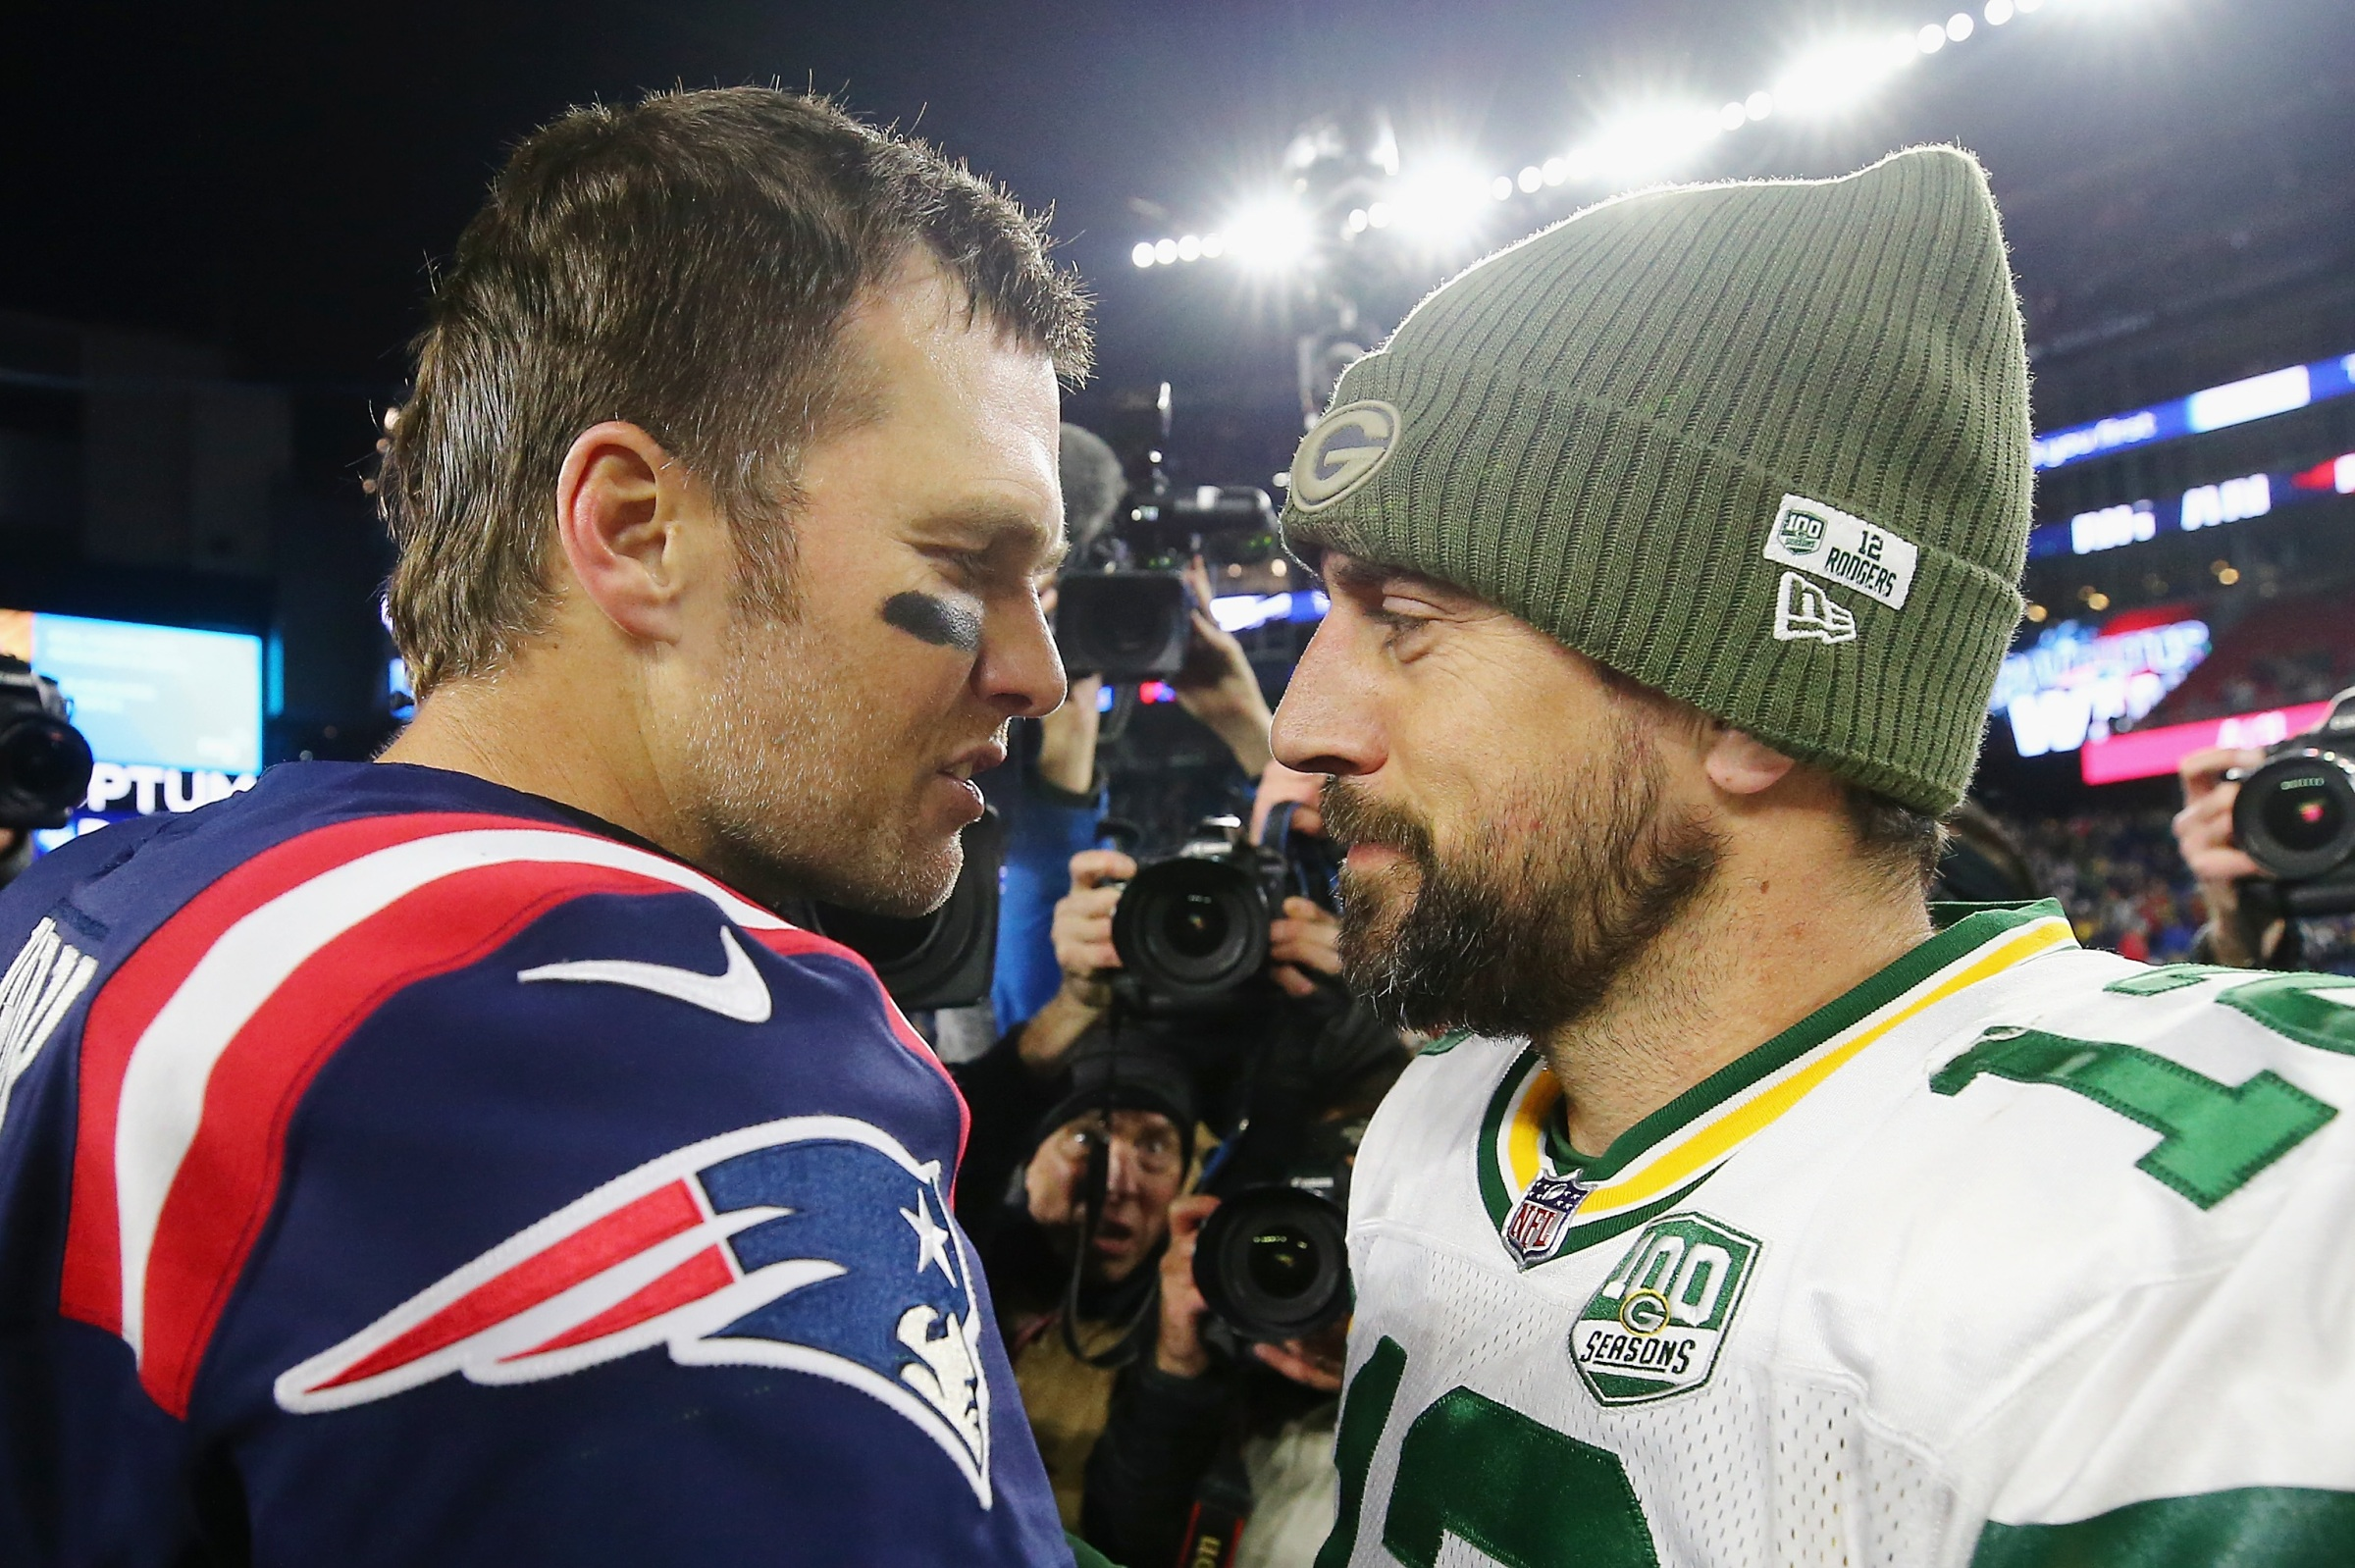 Tom Brady #12 of the New England Patriots talks with Aaron Rodgers #12 of the Green Bay Packers